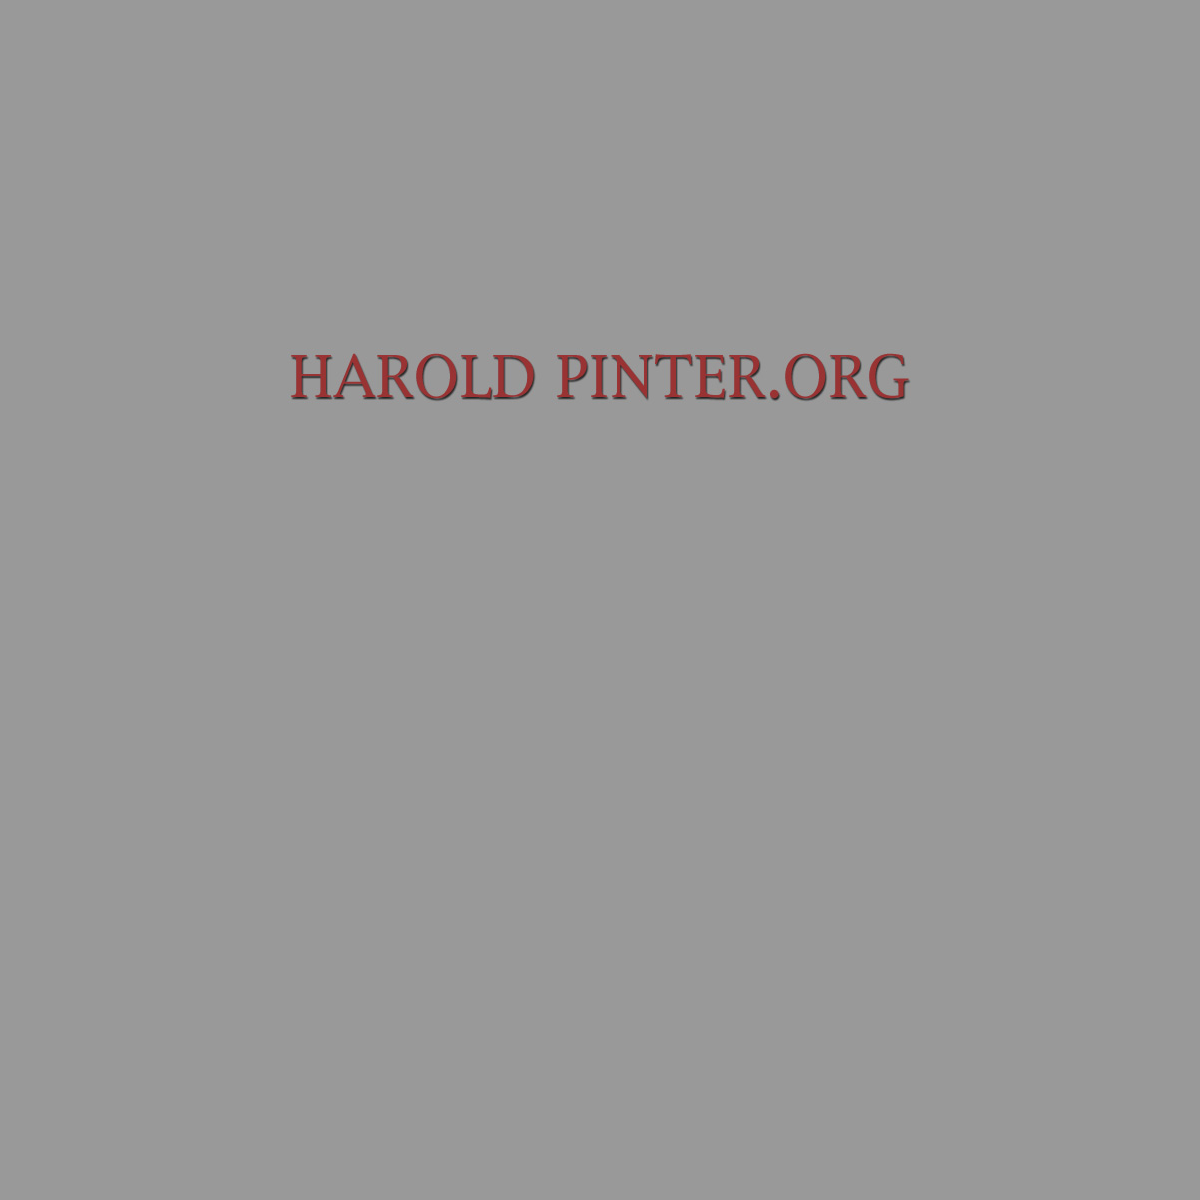 Welcome to Harold Pinter.org